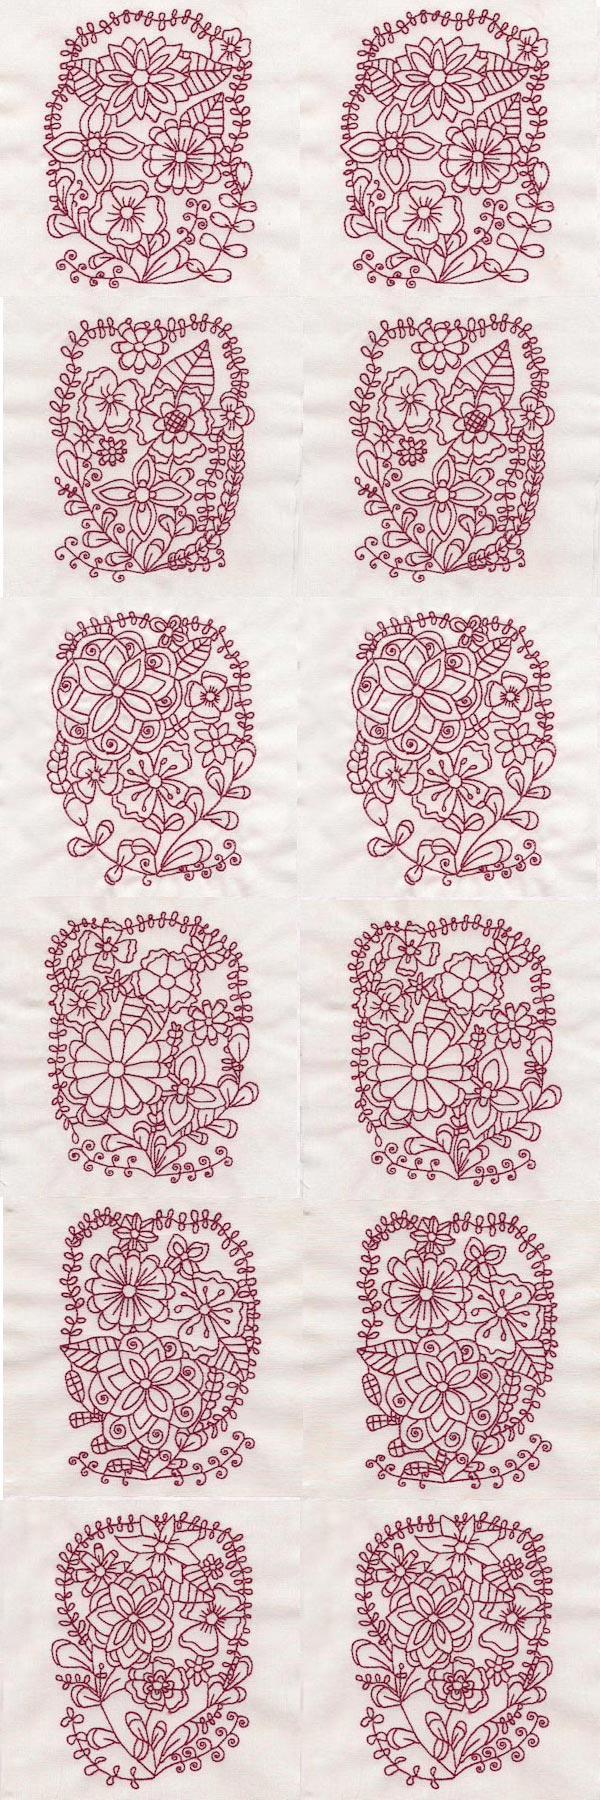 Floral Ovals Colorline Embroidery Machine Design Details